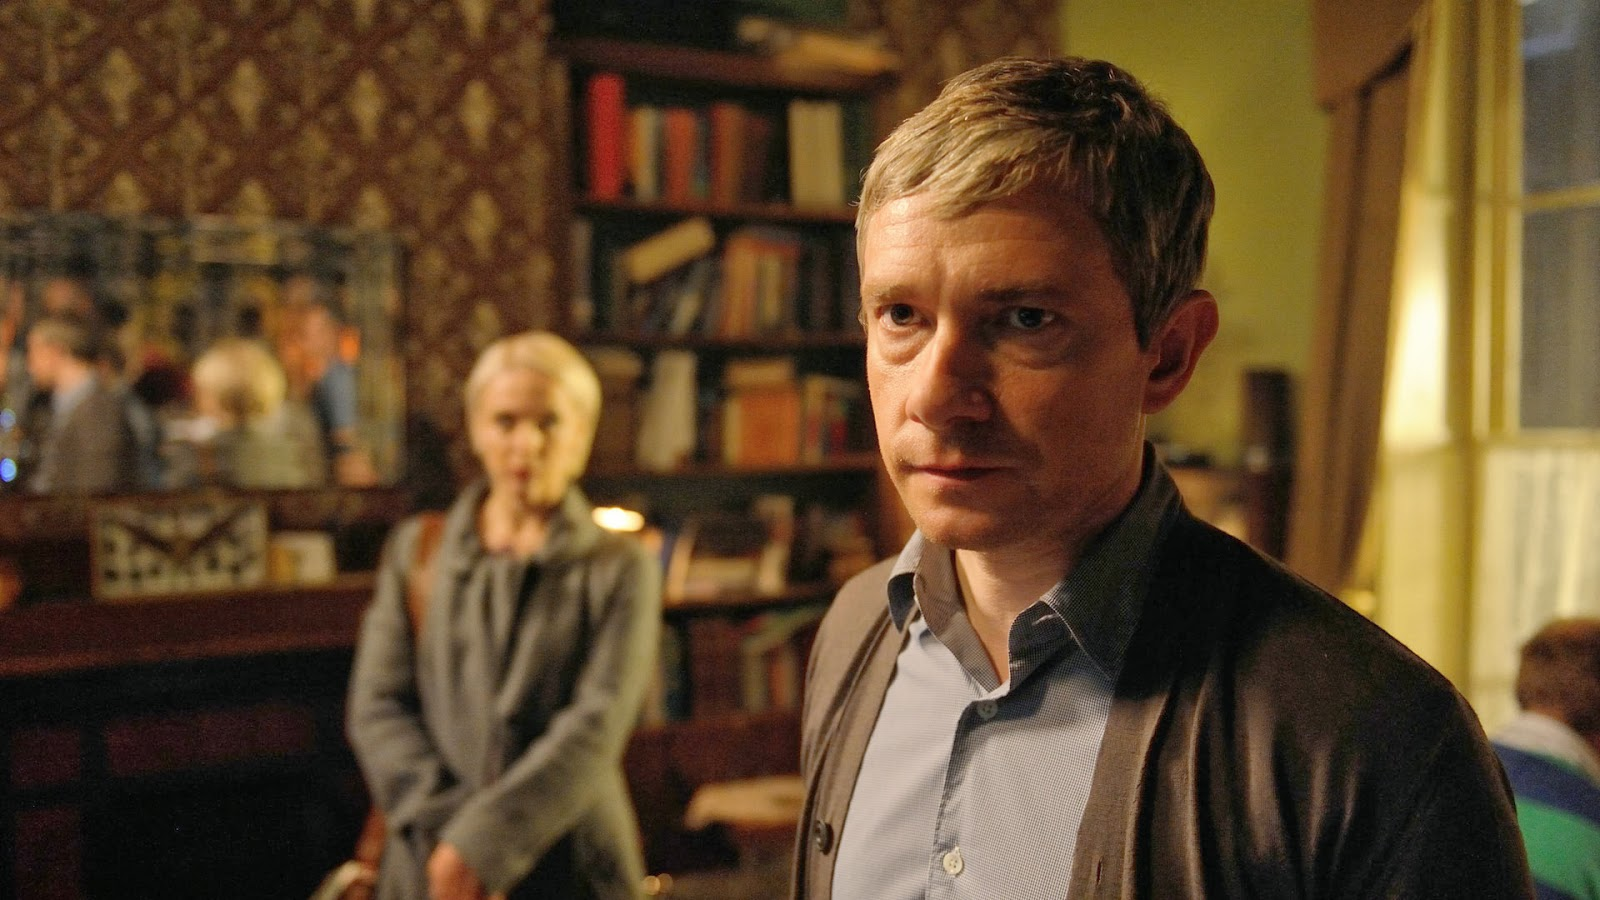 Martin Freeman and Amanda Abbington as John Watson and Mary Morstan in BBC Sherlock Season 3 Episode 3 His Last Vow